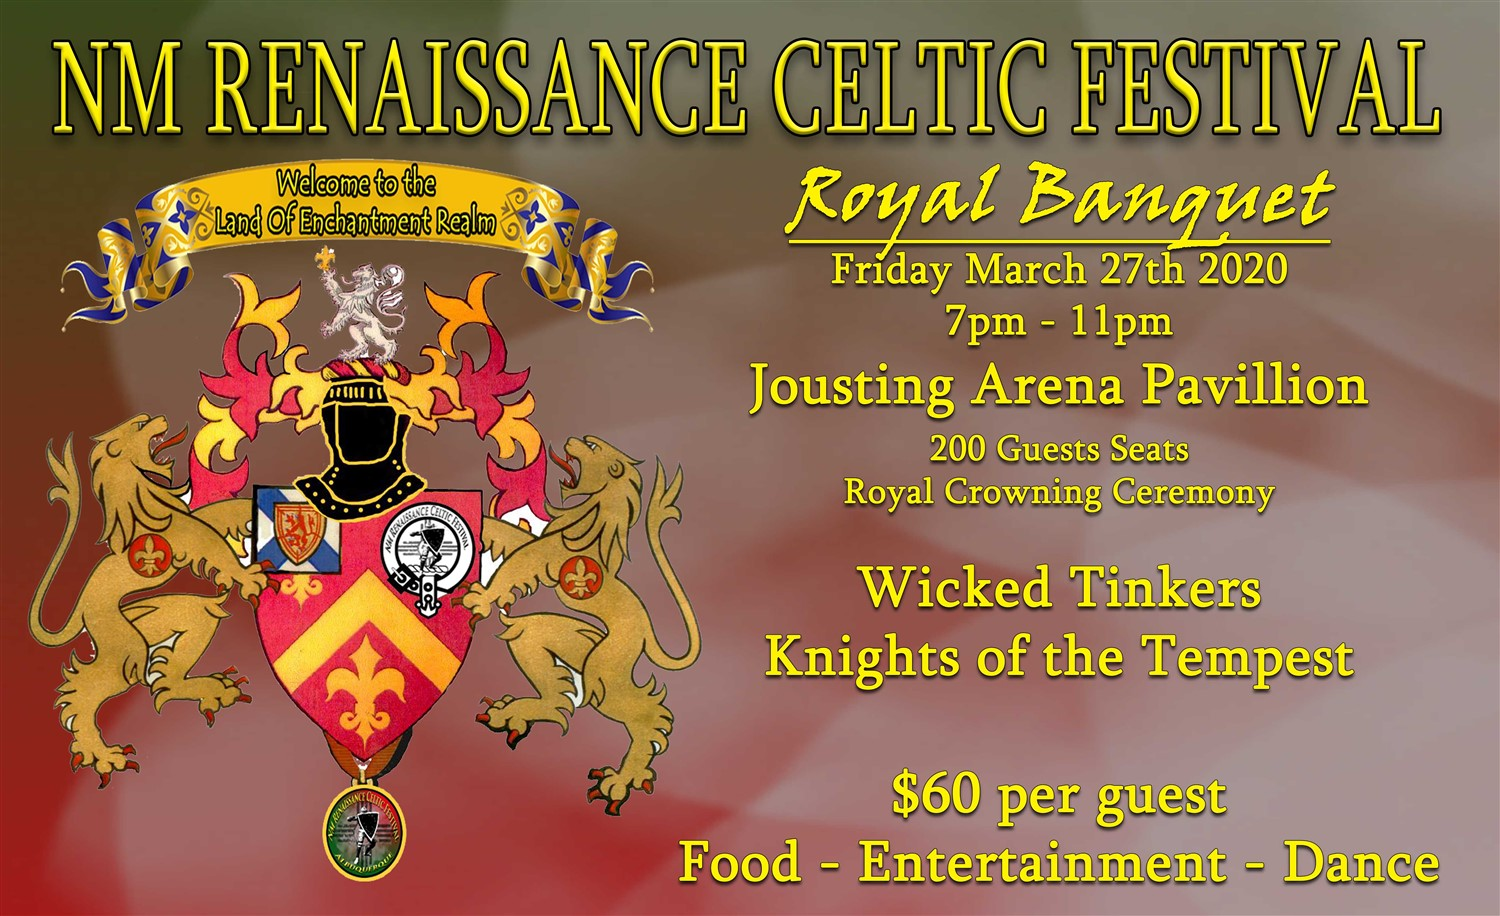 Royal Banquet - Crowning of the Royals Starting the Festival assigned seats for this special event on Mar 27, 19:00@Jousting Arena - Pick a seat, Buy tickets and Get information on NM Renaissance Celtic Festival